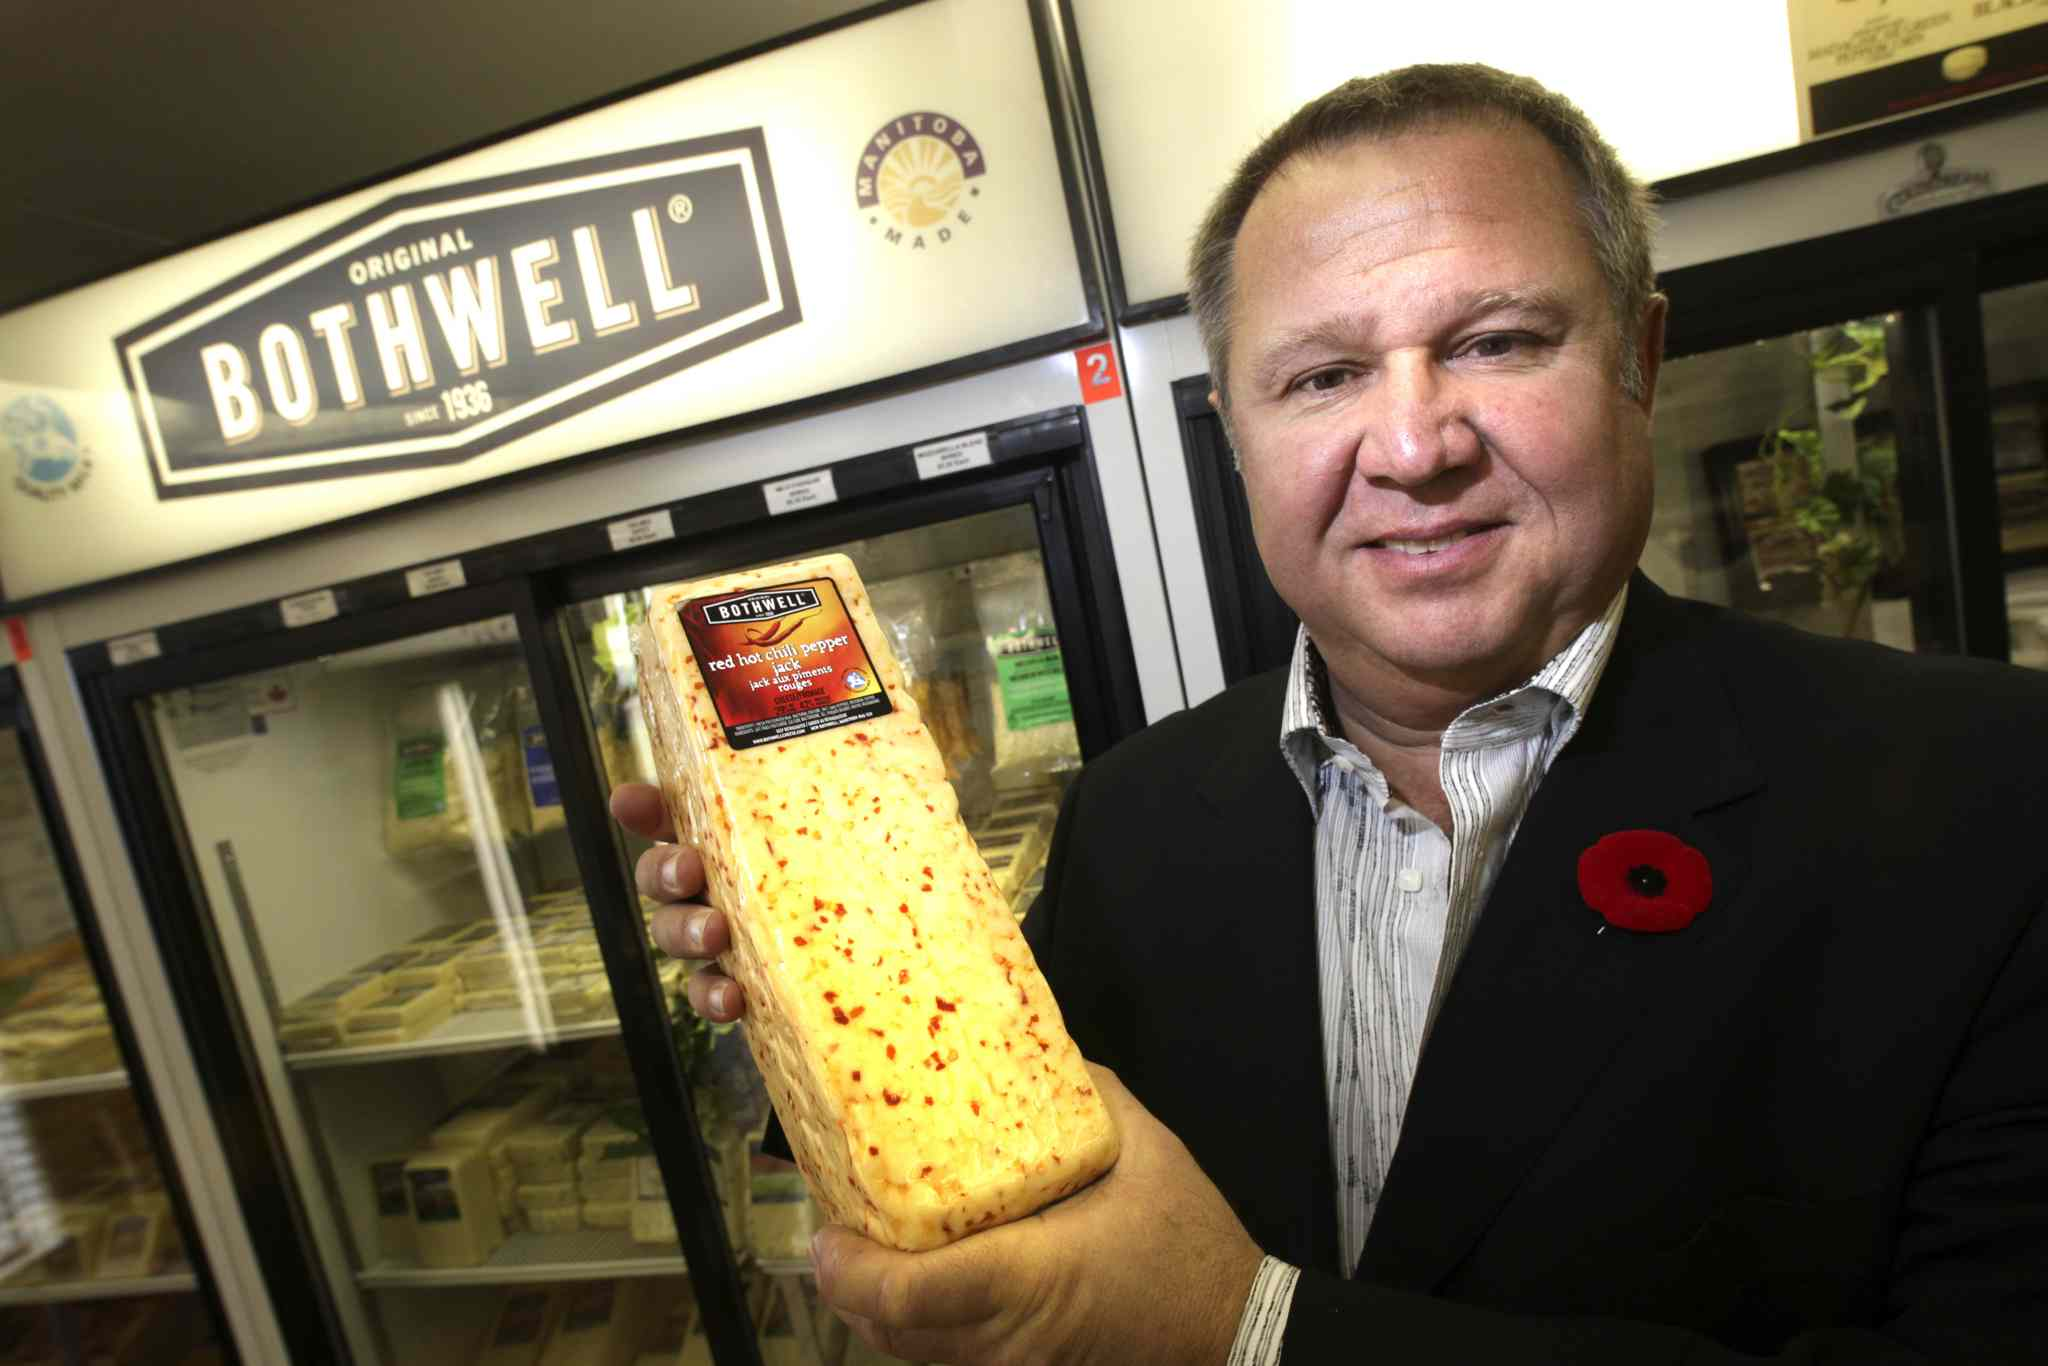 Ivan Balenovic, president and CEO of Bothwell Cheese, at the site of their plant in New Bothwell. The cheese company continues to win awards.